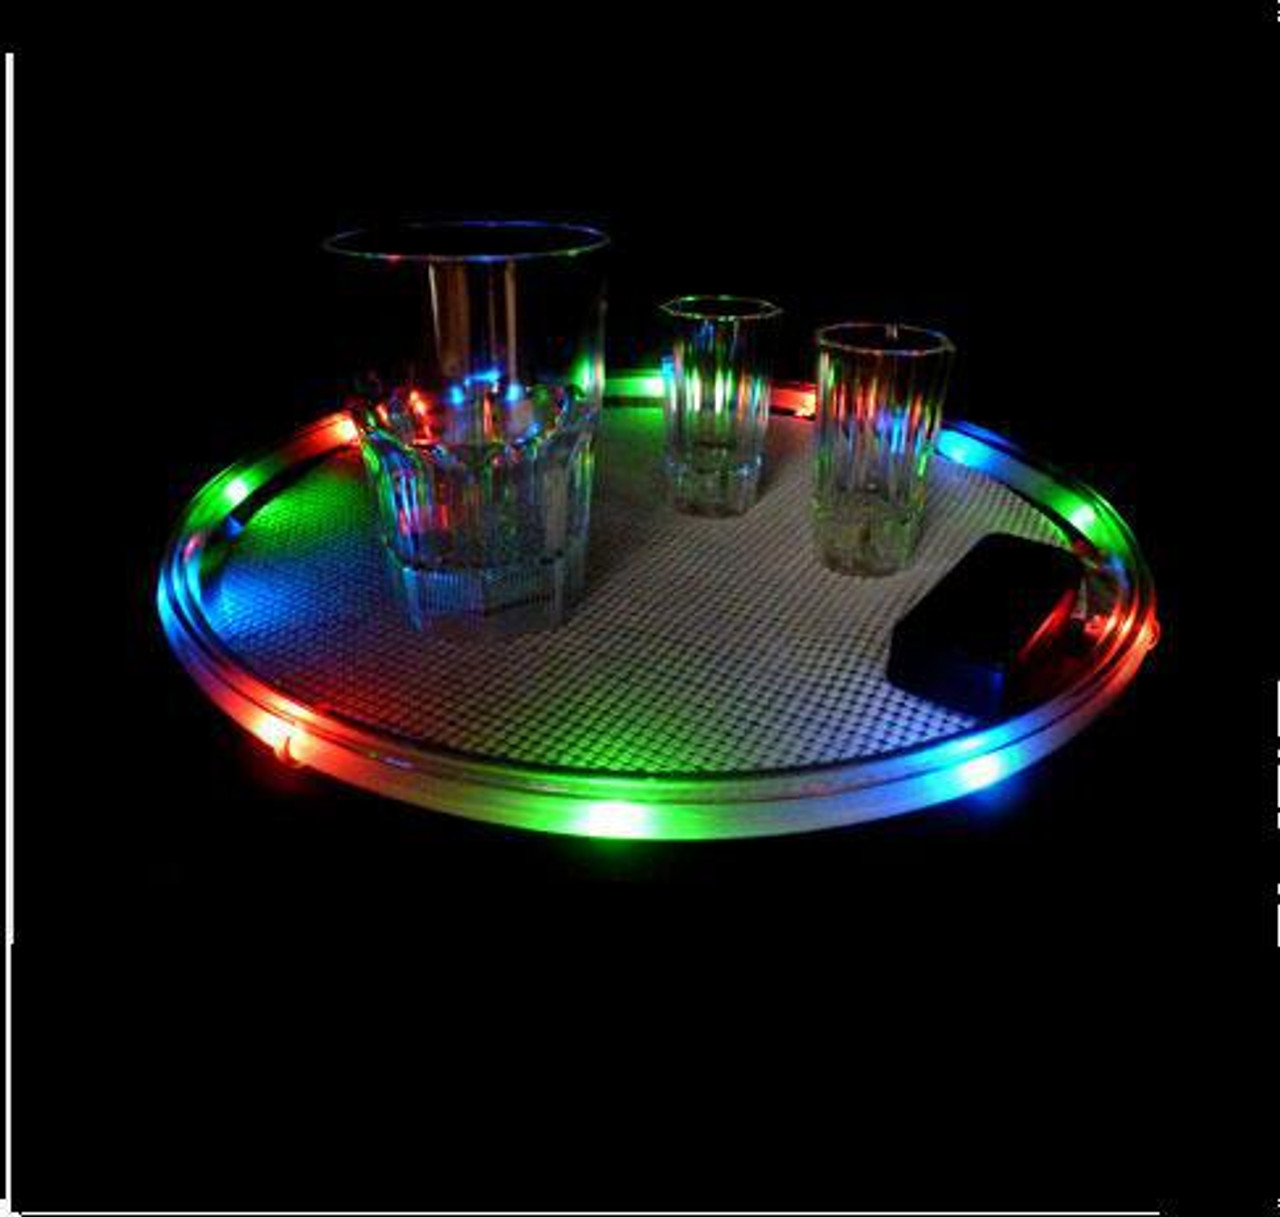 TRAY, serving tray, drink tray, LED, Light up, rgb, multicolor, caddy,